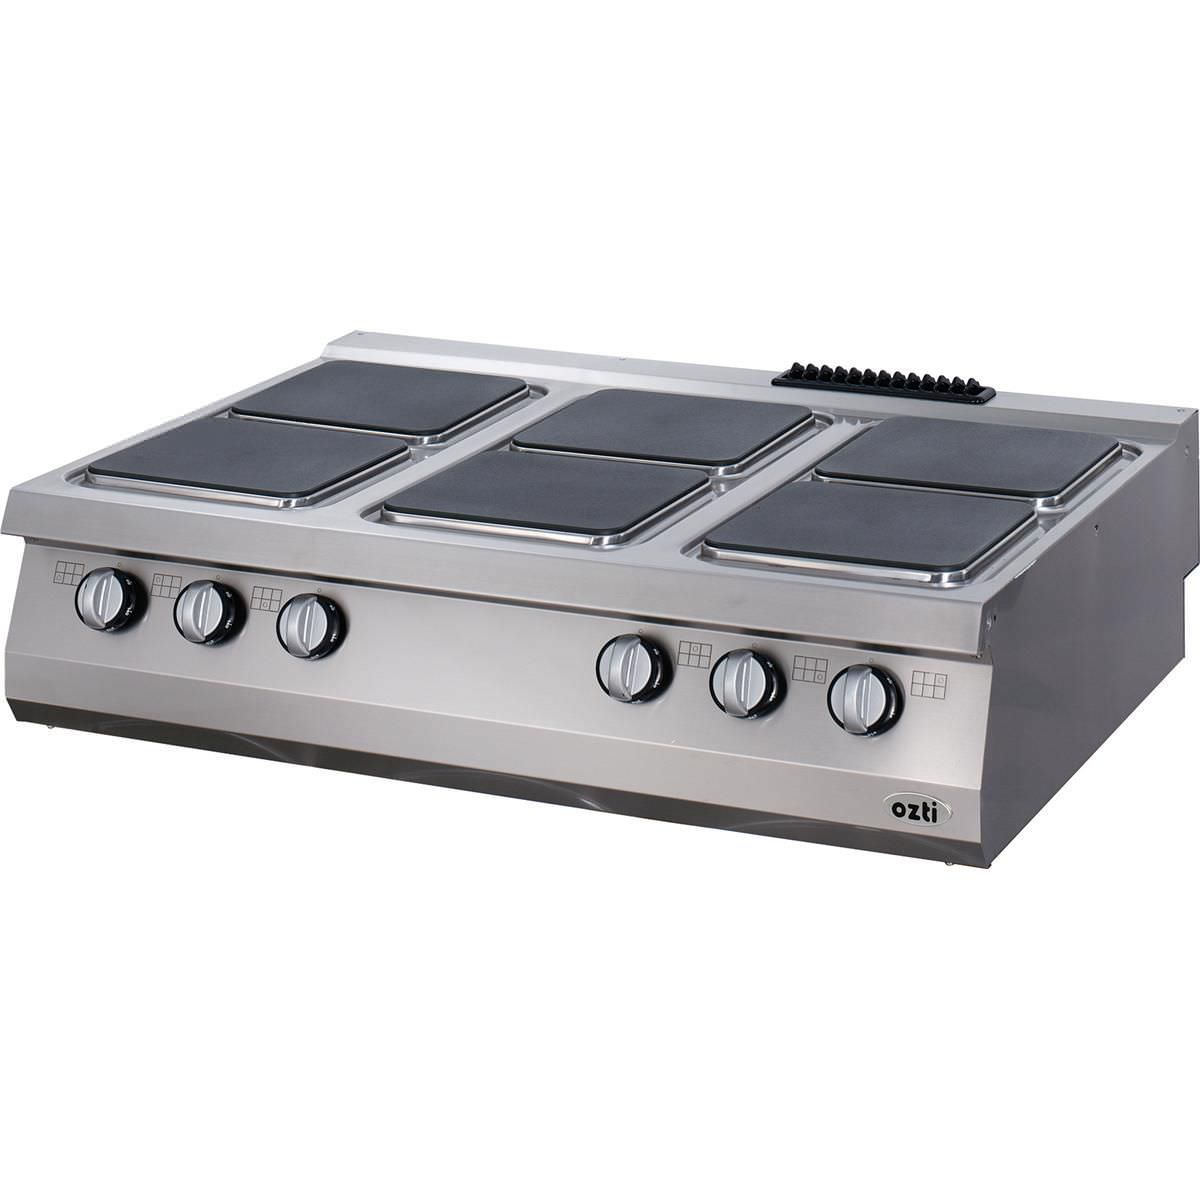 Attractive Electric Cooktop / Commercial   900 : 7865.N1.12903.21